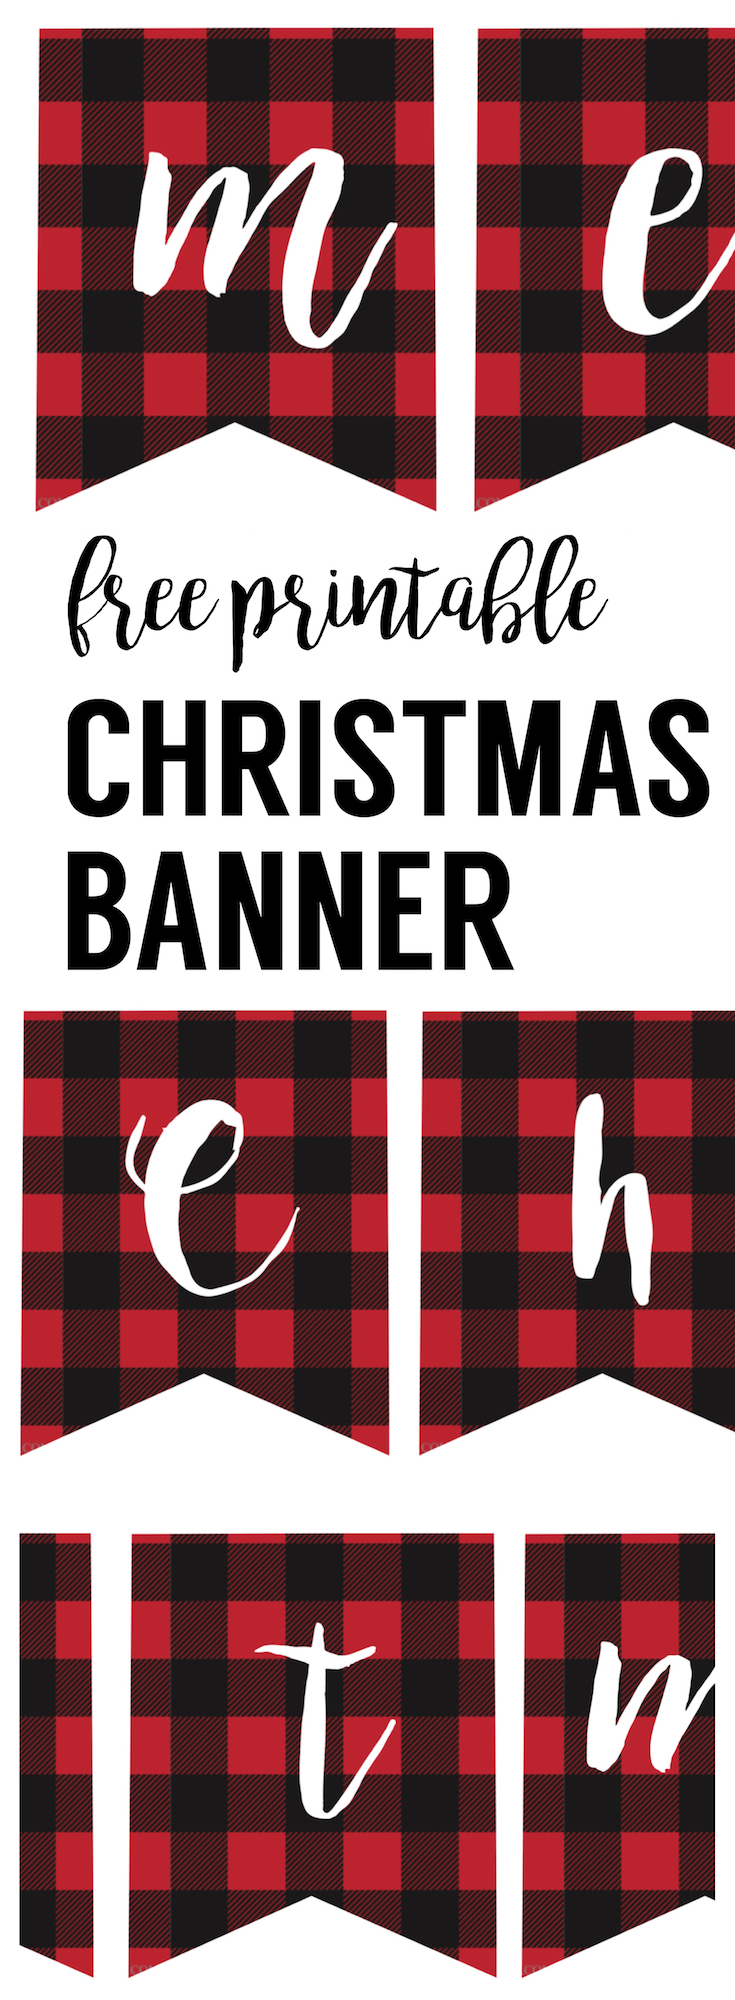 photo regarding Merry Christmas Banner Printable titled Mini Merry Xmas Banner and Vacation Printables Weblog Hop